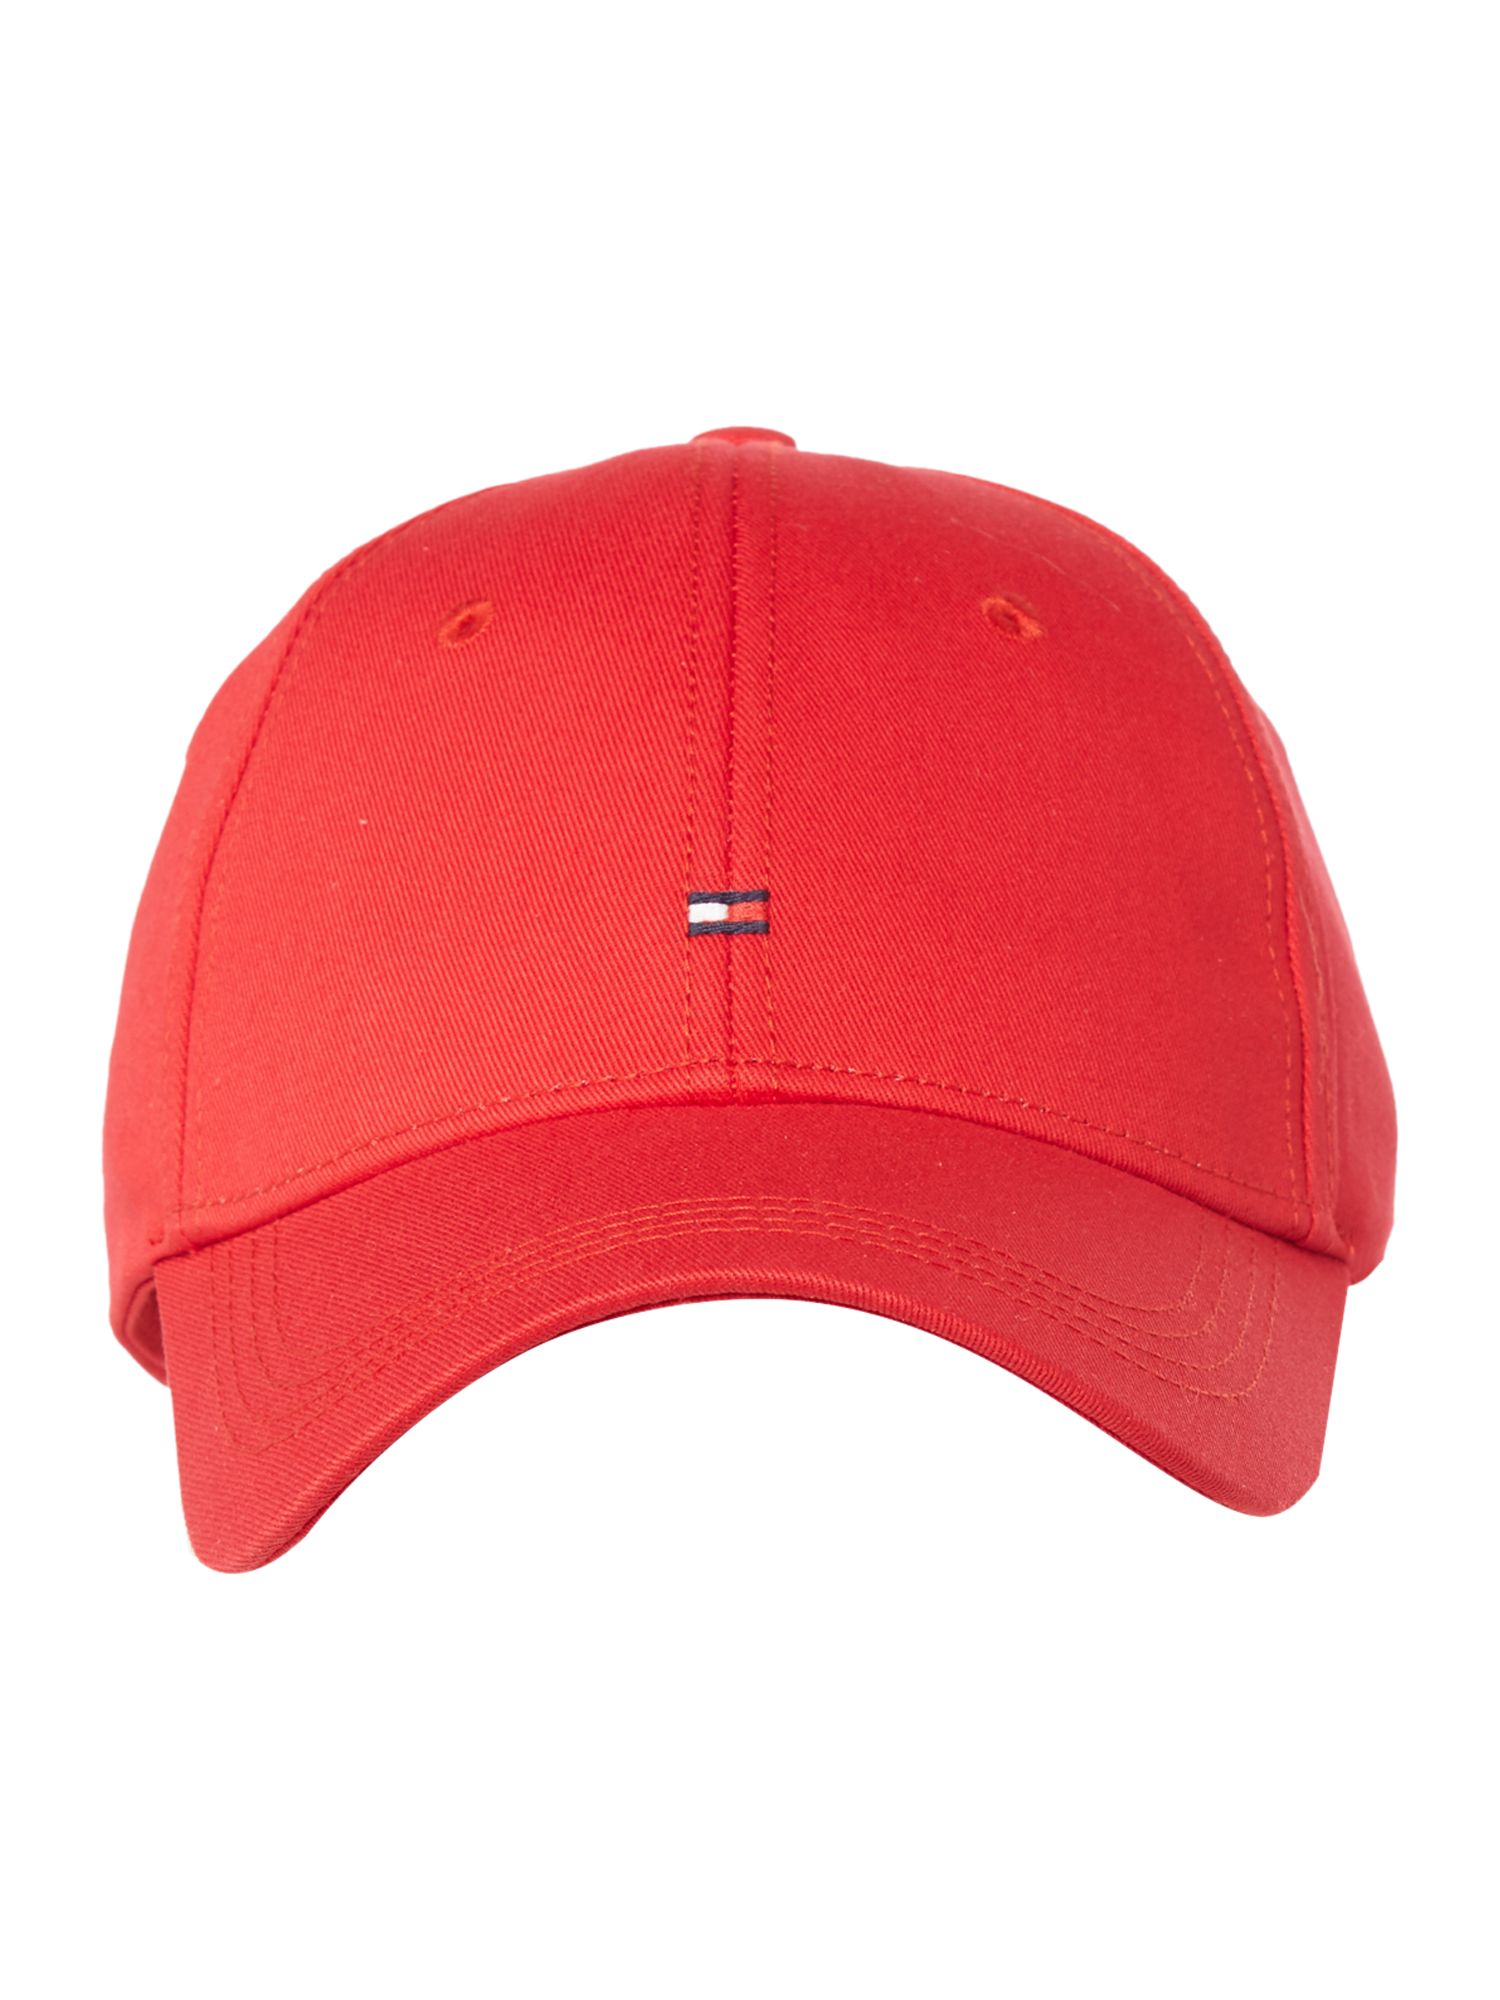 Tommy Hilfiger CP CLASSIC SPORT CAP Red